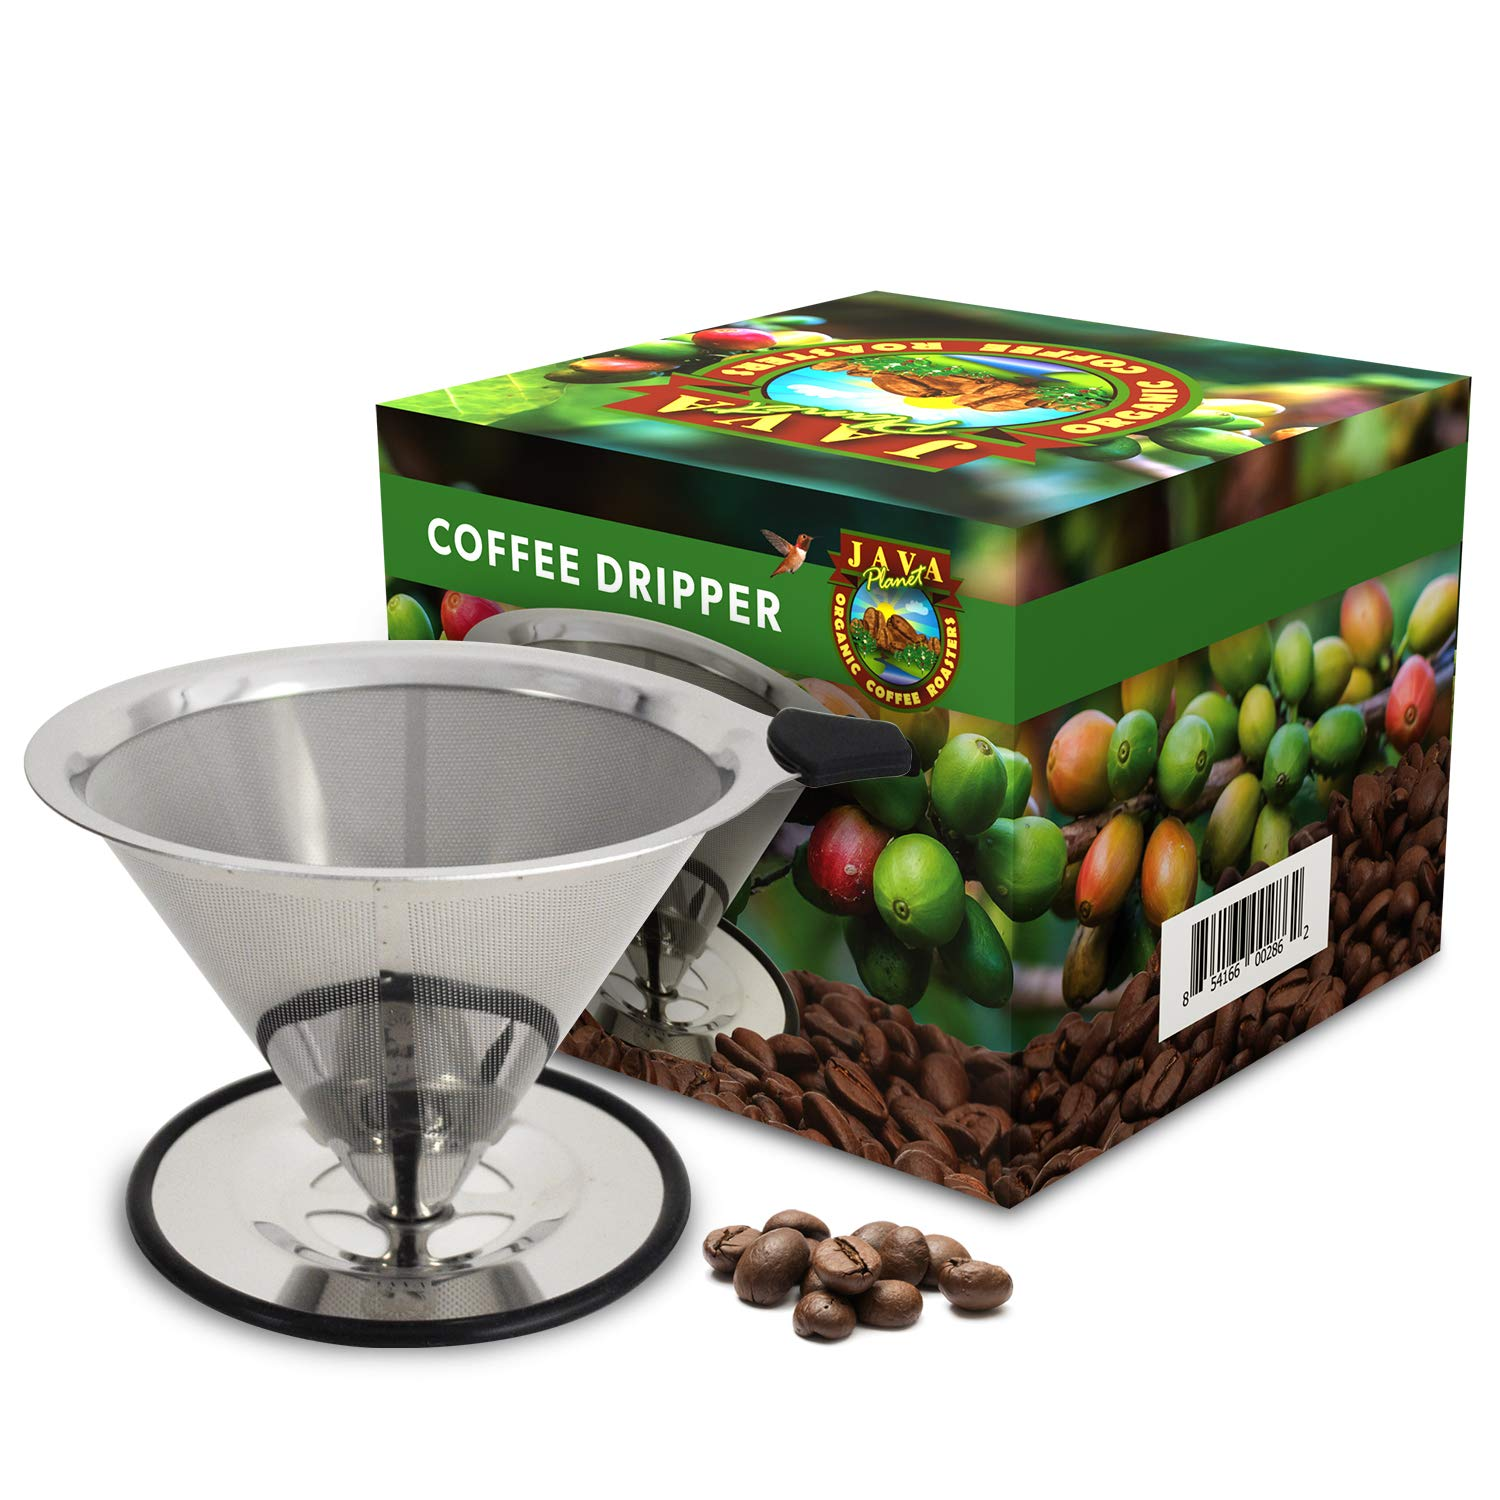 Java Planet - Pour Over Coffee Cone Dripper -Reusable Stainless Steel Filter Coffee Maker by Java Planet Organic Coffee Roasters